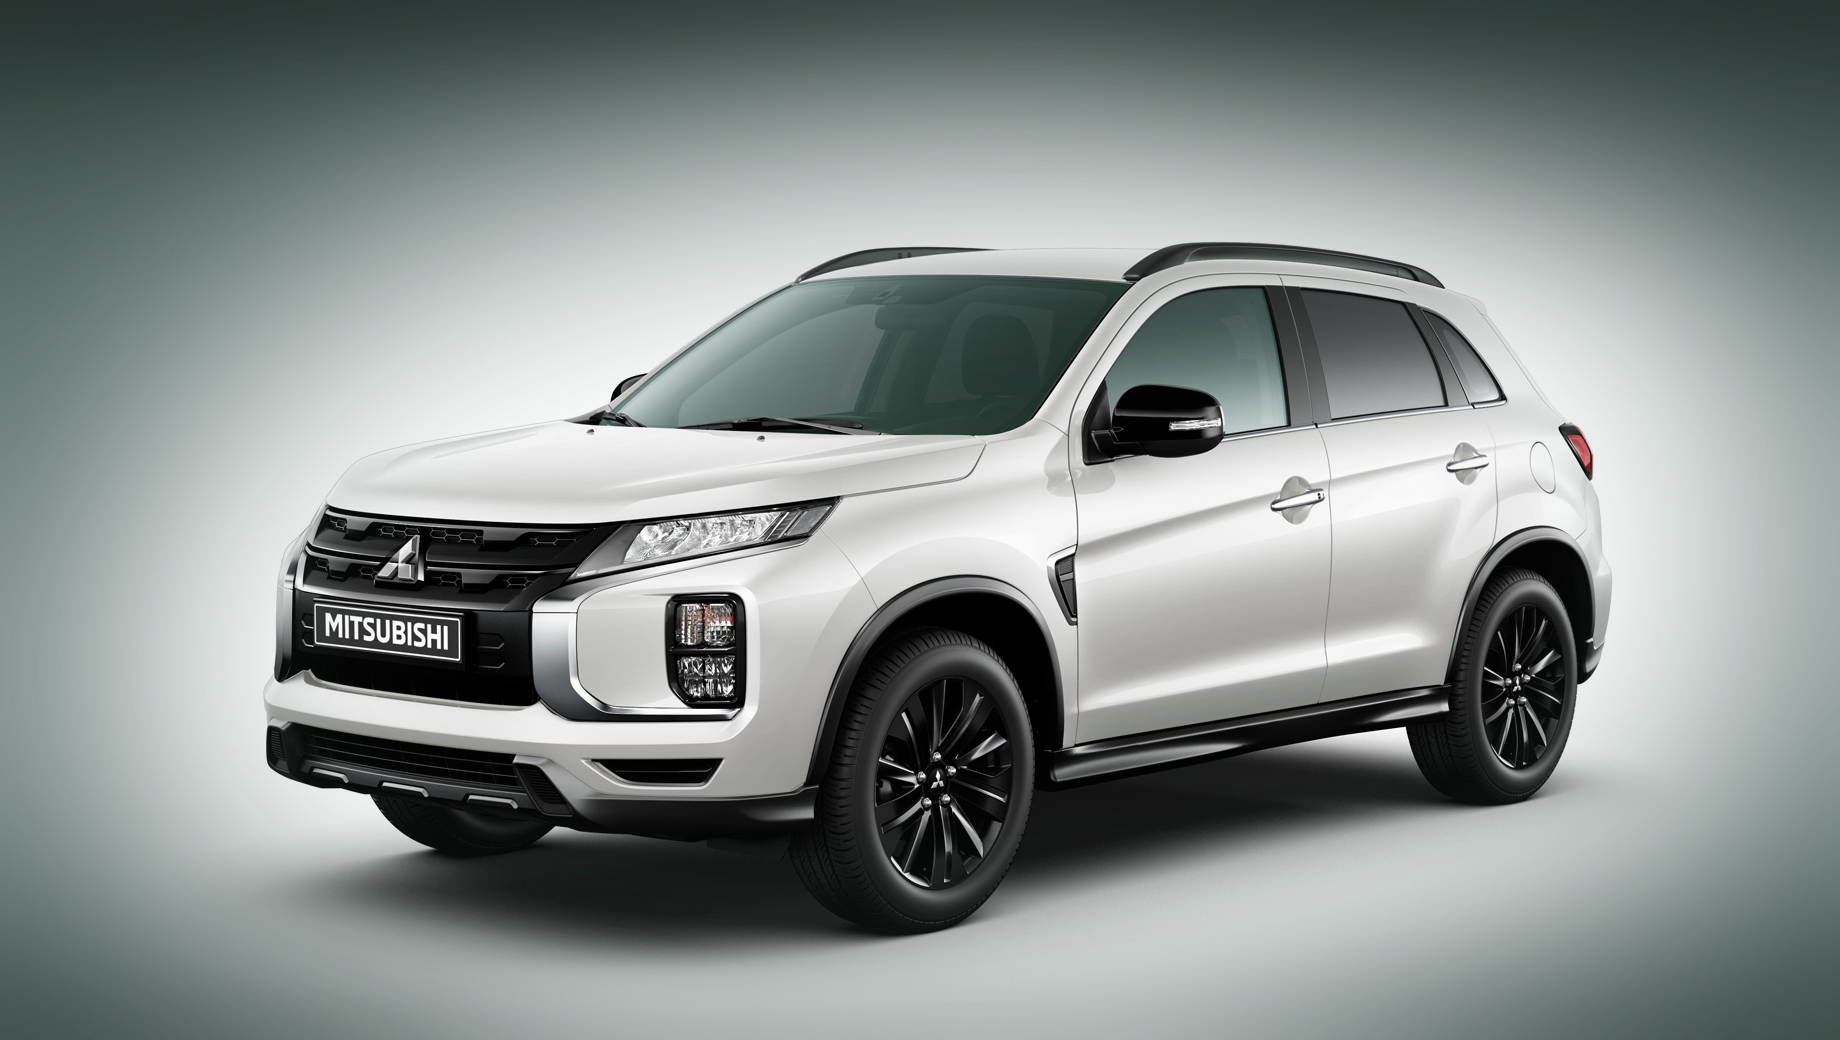 The Mitsubishi ASX went through a facelift in Russia last spring and now follows the example of its larger sibling, the Outlander, debuting in a new trim level called the Black Edition.